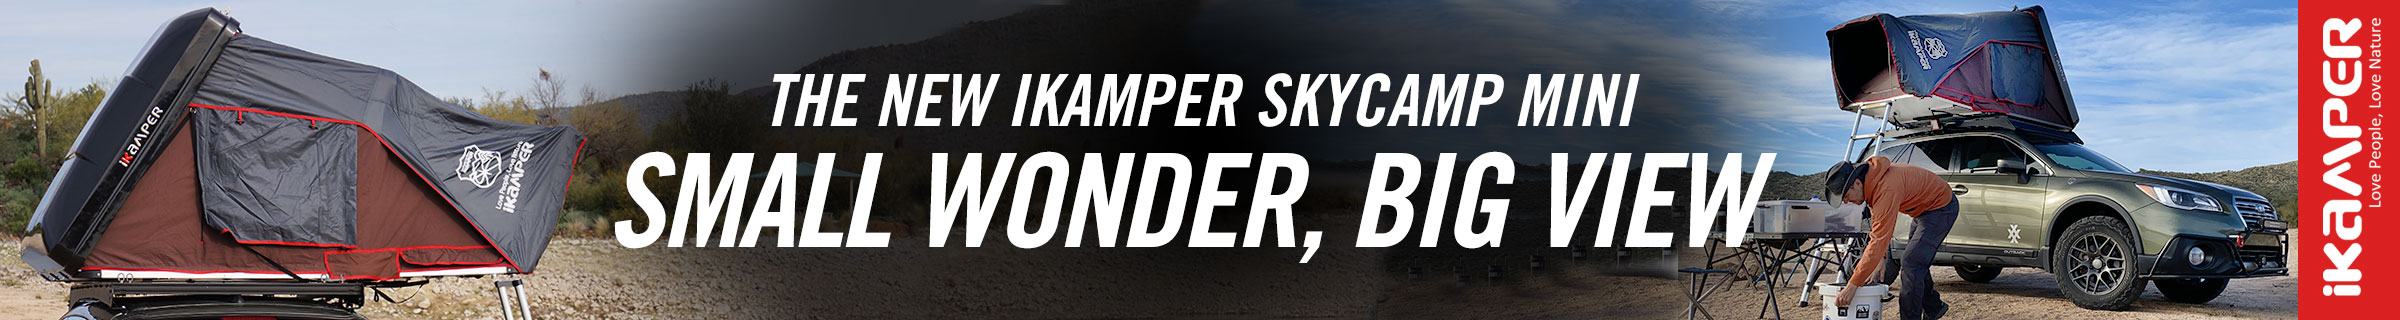 iKamper Skycamp Mini 4XPEDITITION Subaru Outback